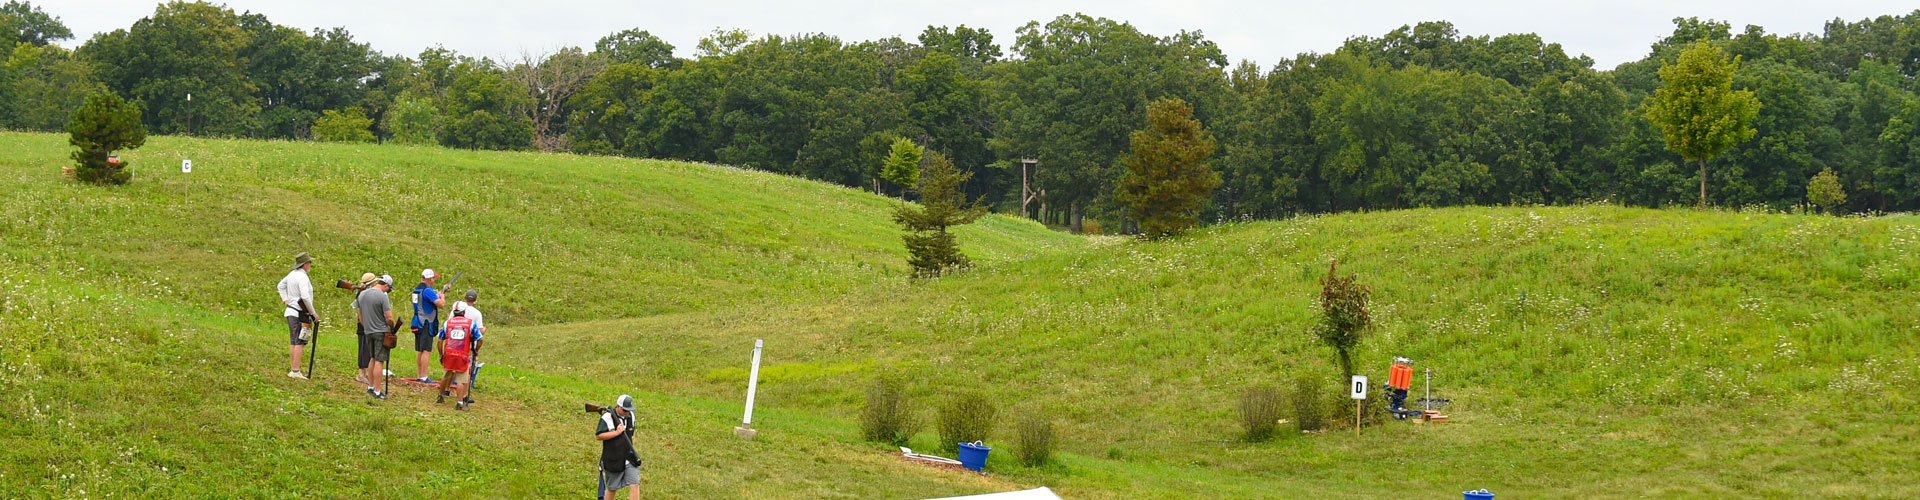 NSCA - National Sporting Clays Association – The NSCA is